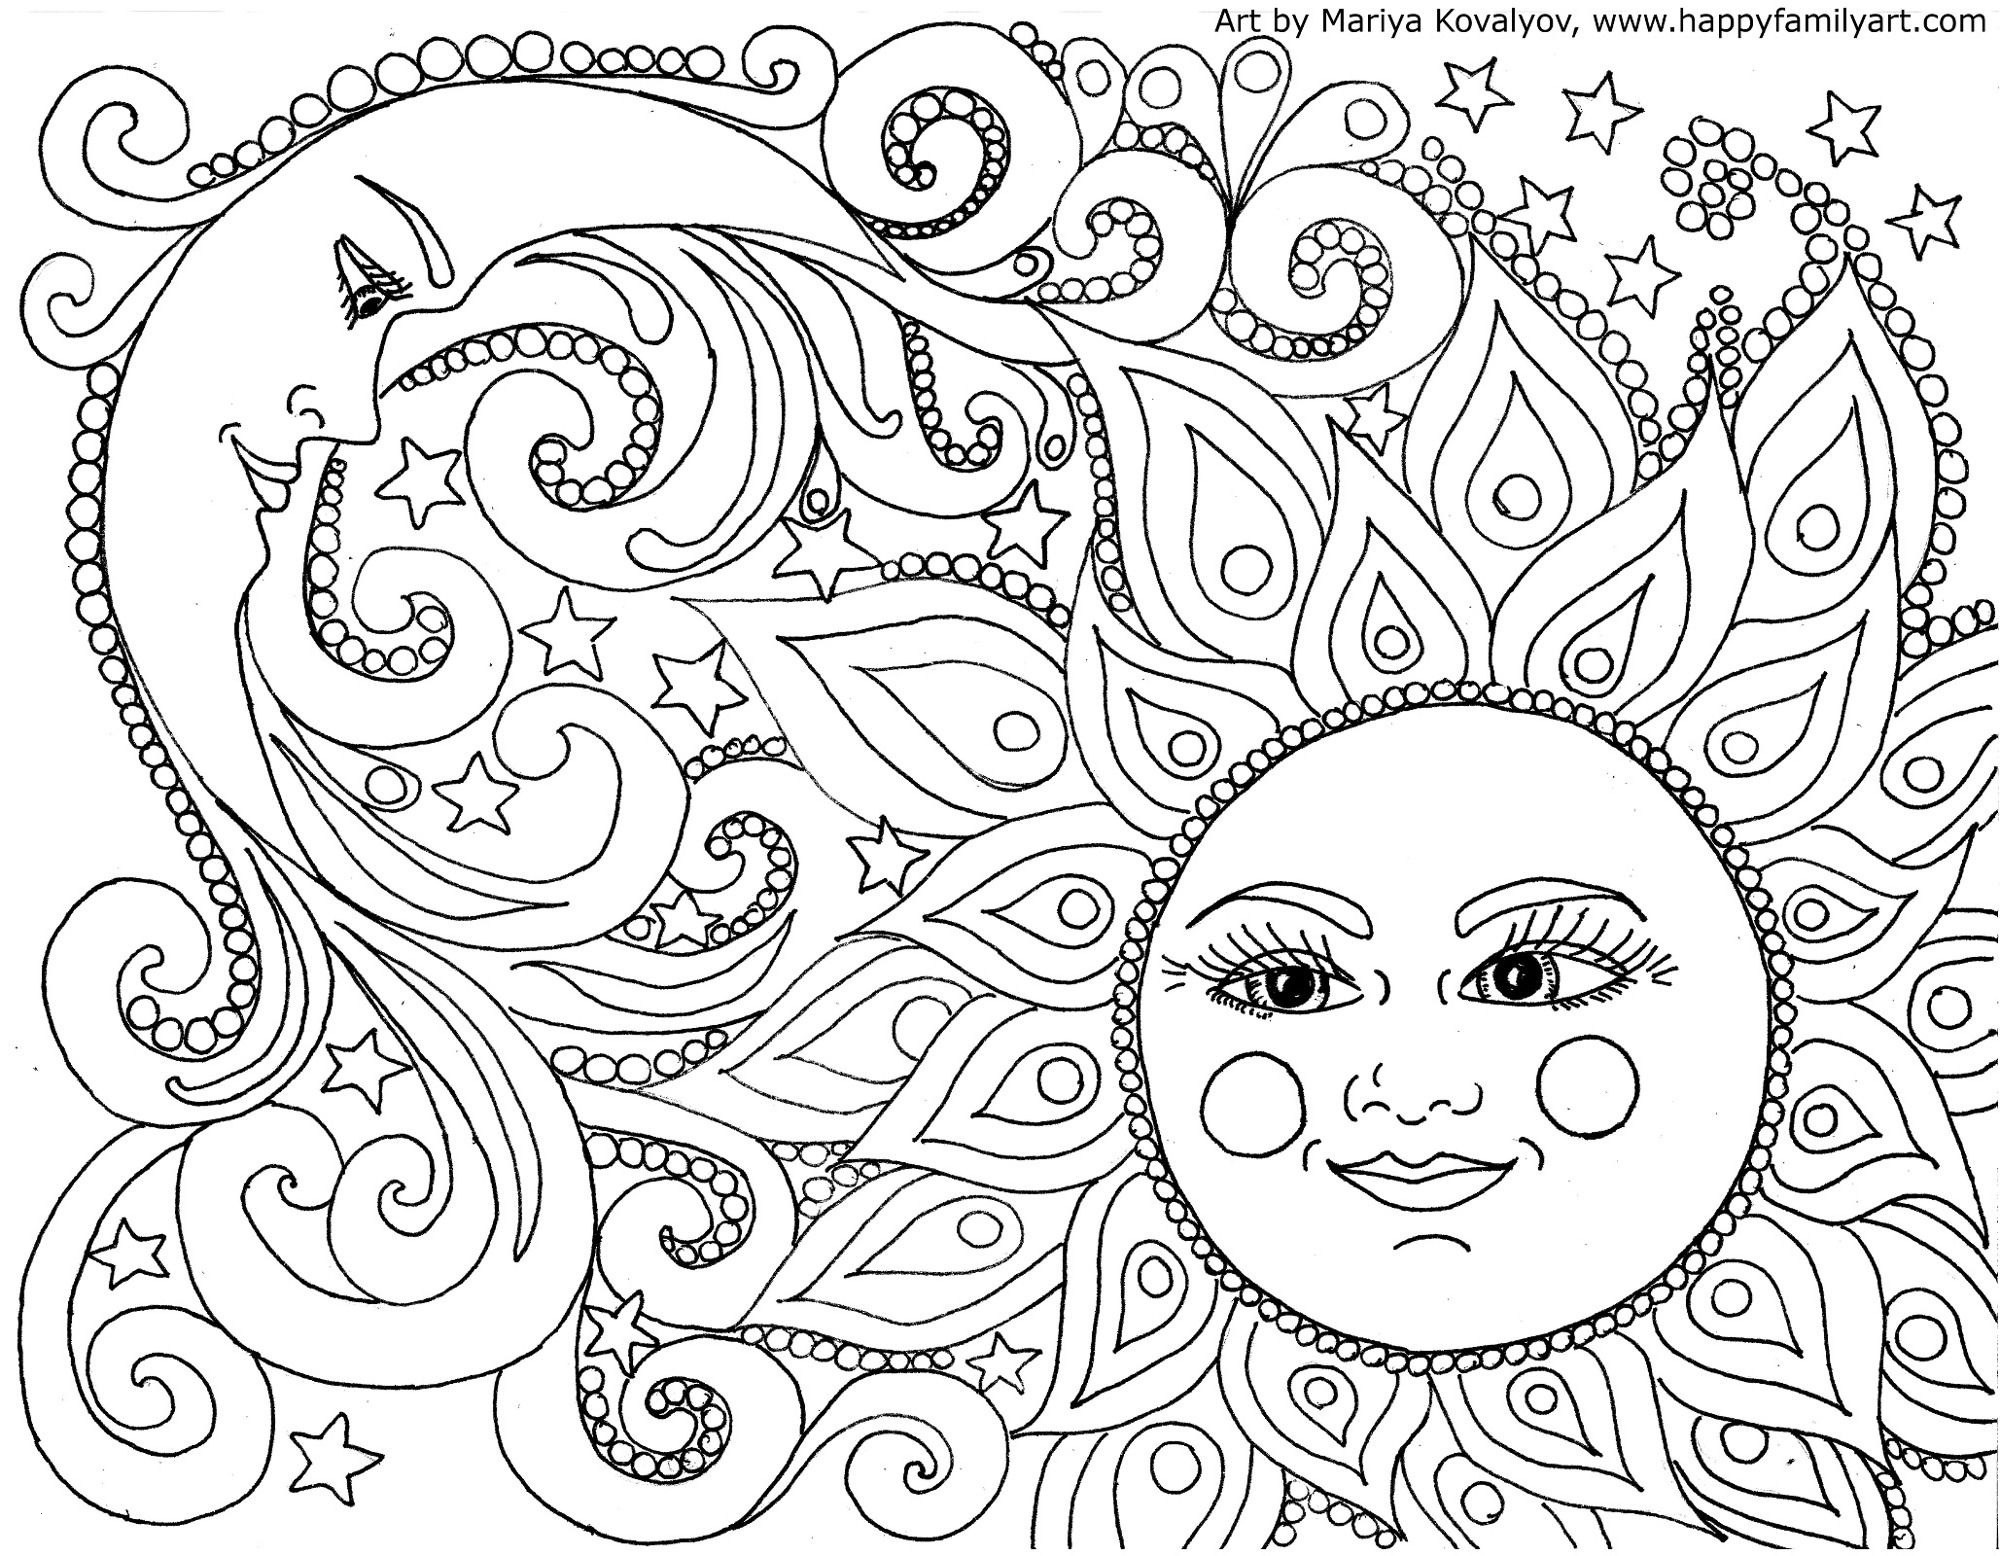 Mandalas For Kids - Fresh Free Printable Mandala Coloring Pages - Free Mandalas To Colour In Printable